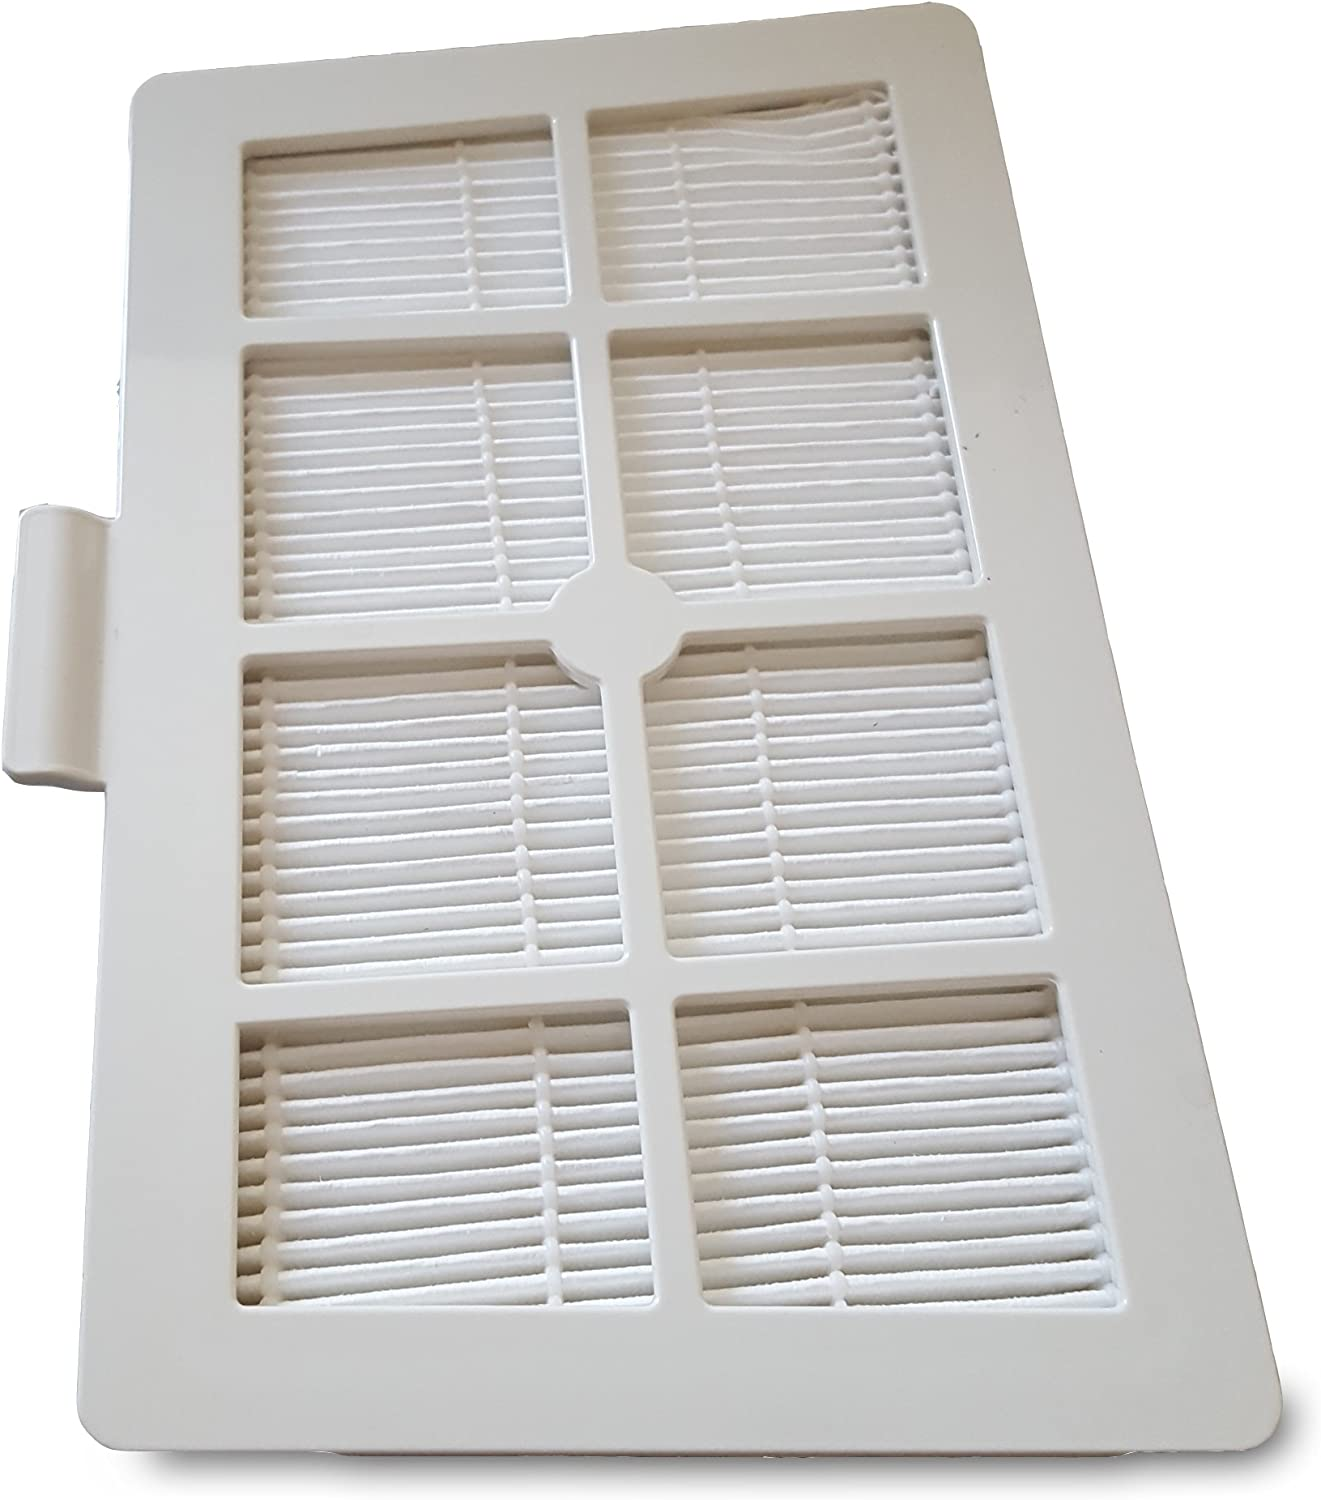 New HEPA Filter /& Charcoal filter for The Prolux Enfinity Air Purifier cleaner